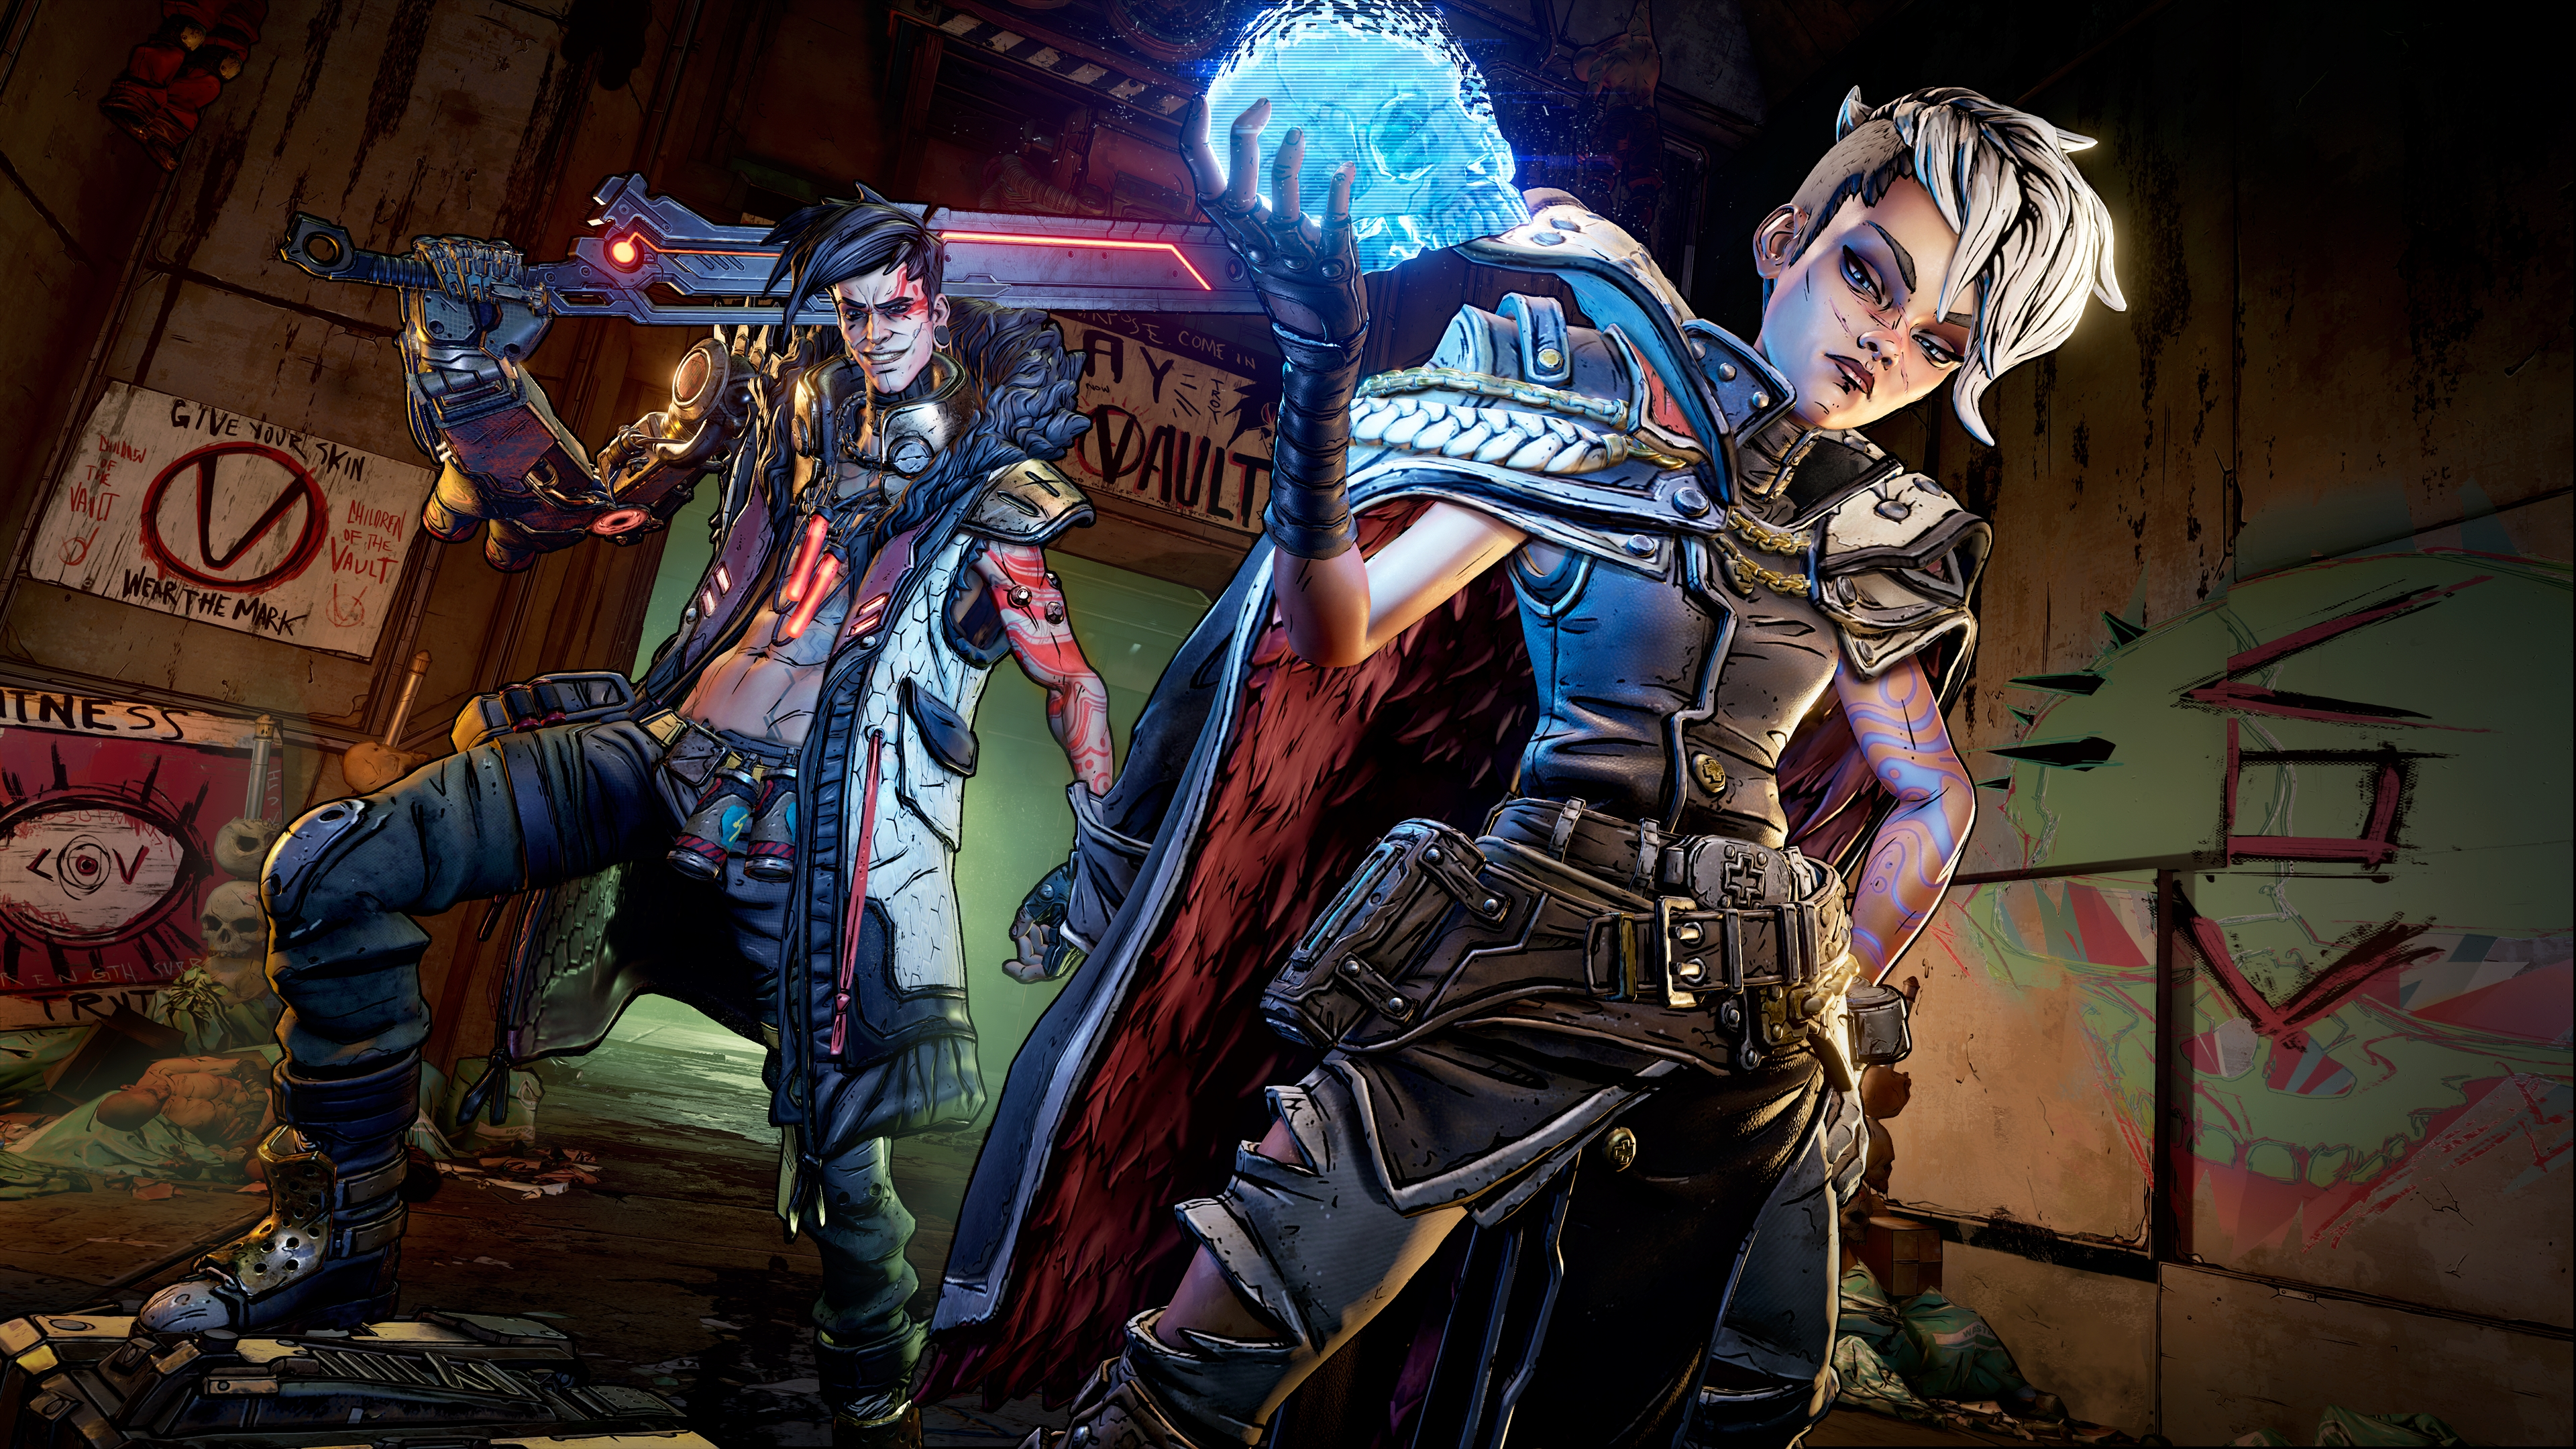 Borderlands 3 Deluxe Edition (Steam) | ROW (c125337a-7e50-40e7-8dbd-7e52c34e61cc)